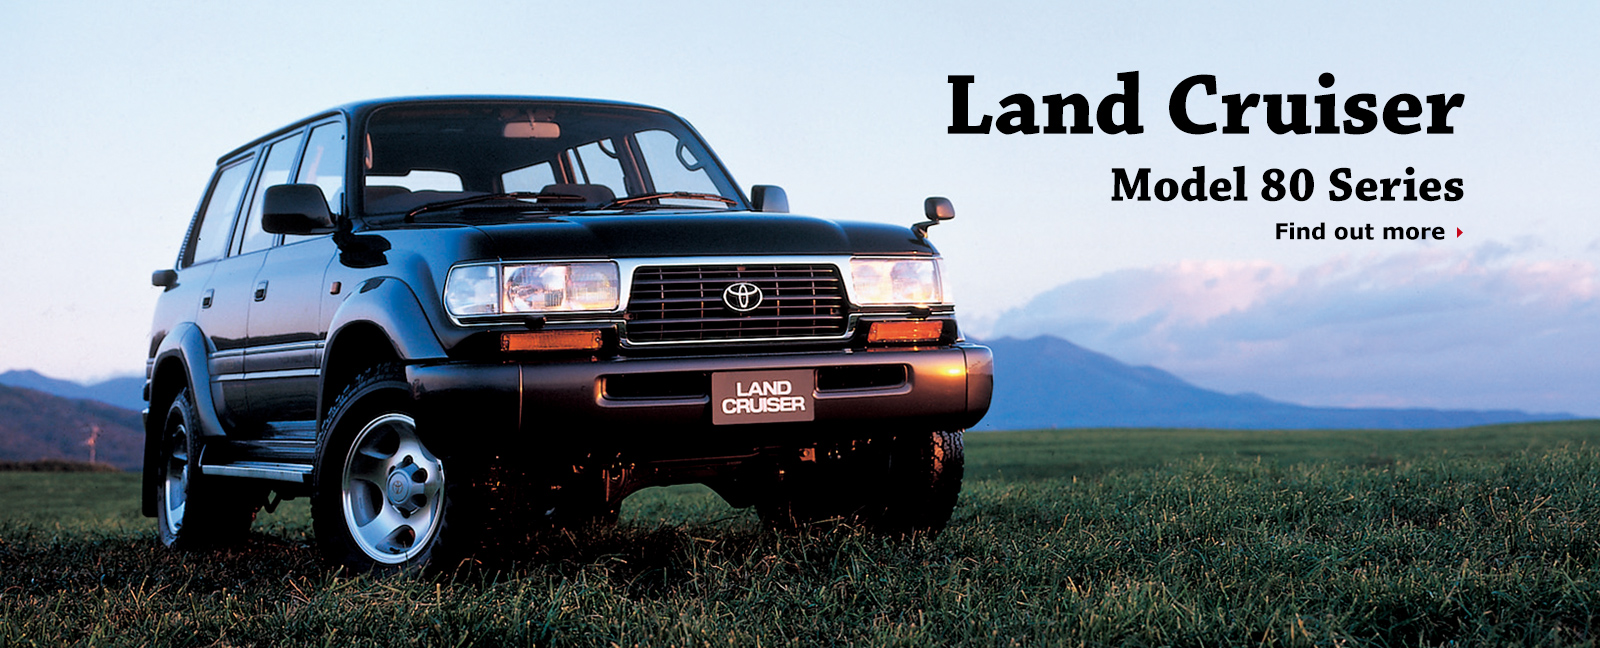 Land Cruiser Model 80 Series Find out more